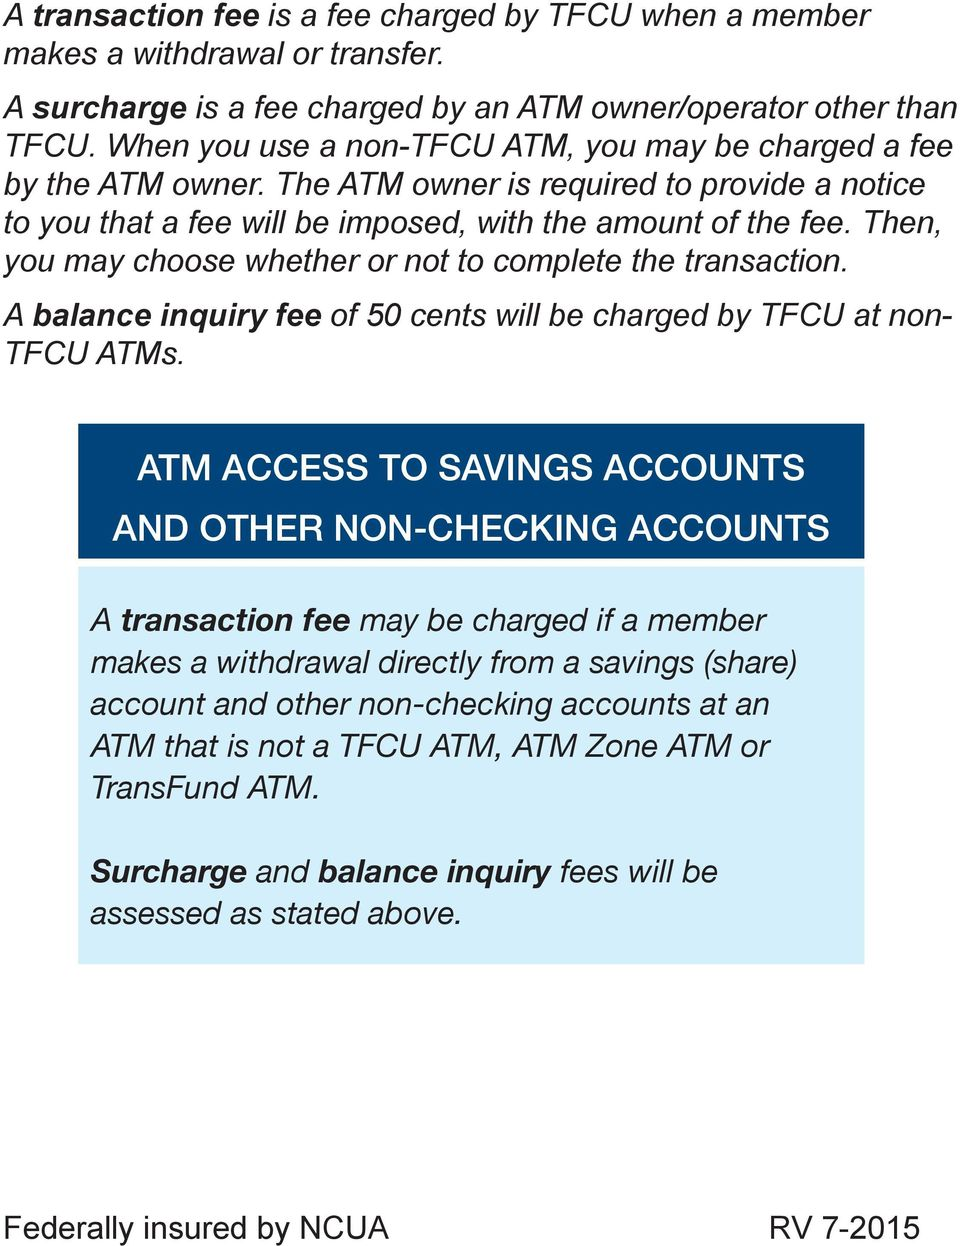 Then, you may choose whether or not to complete the transaction. A balance inquiry fee of 50 cents will be charged by TFCU at non- TFCU ATMs.